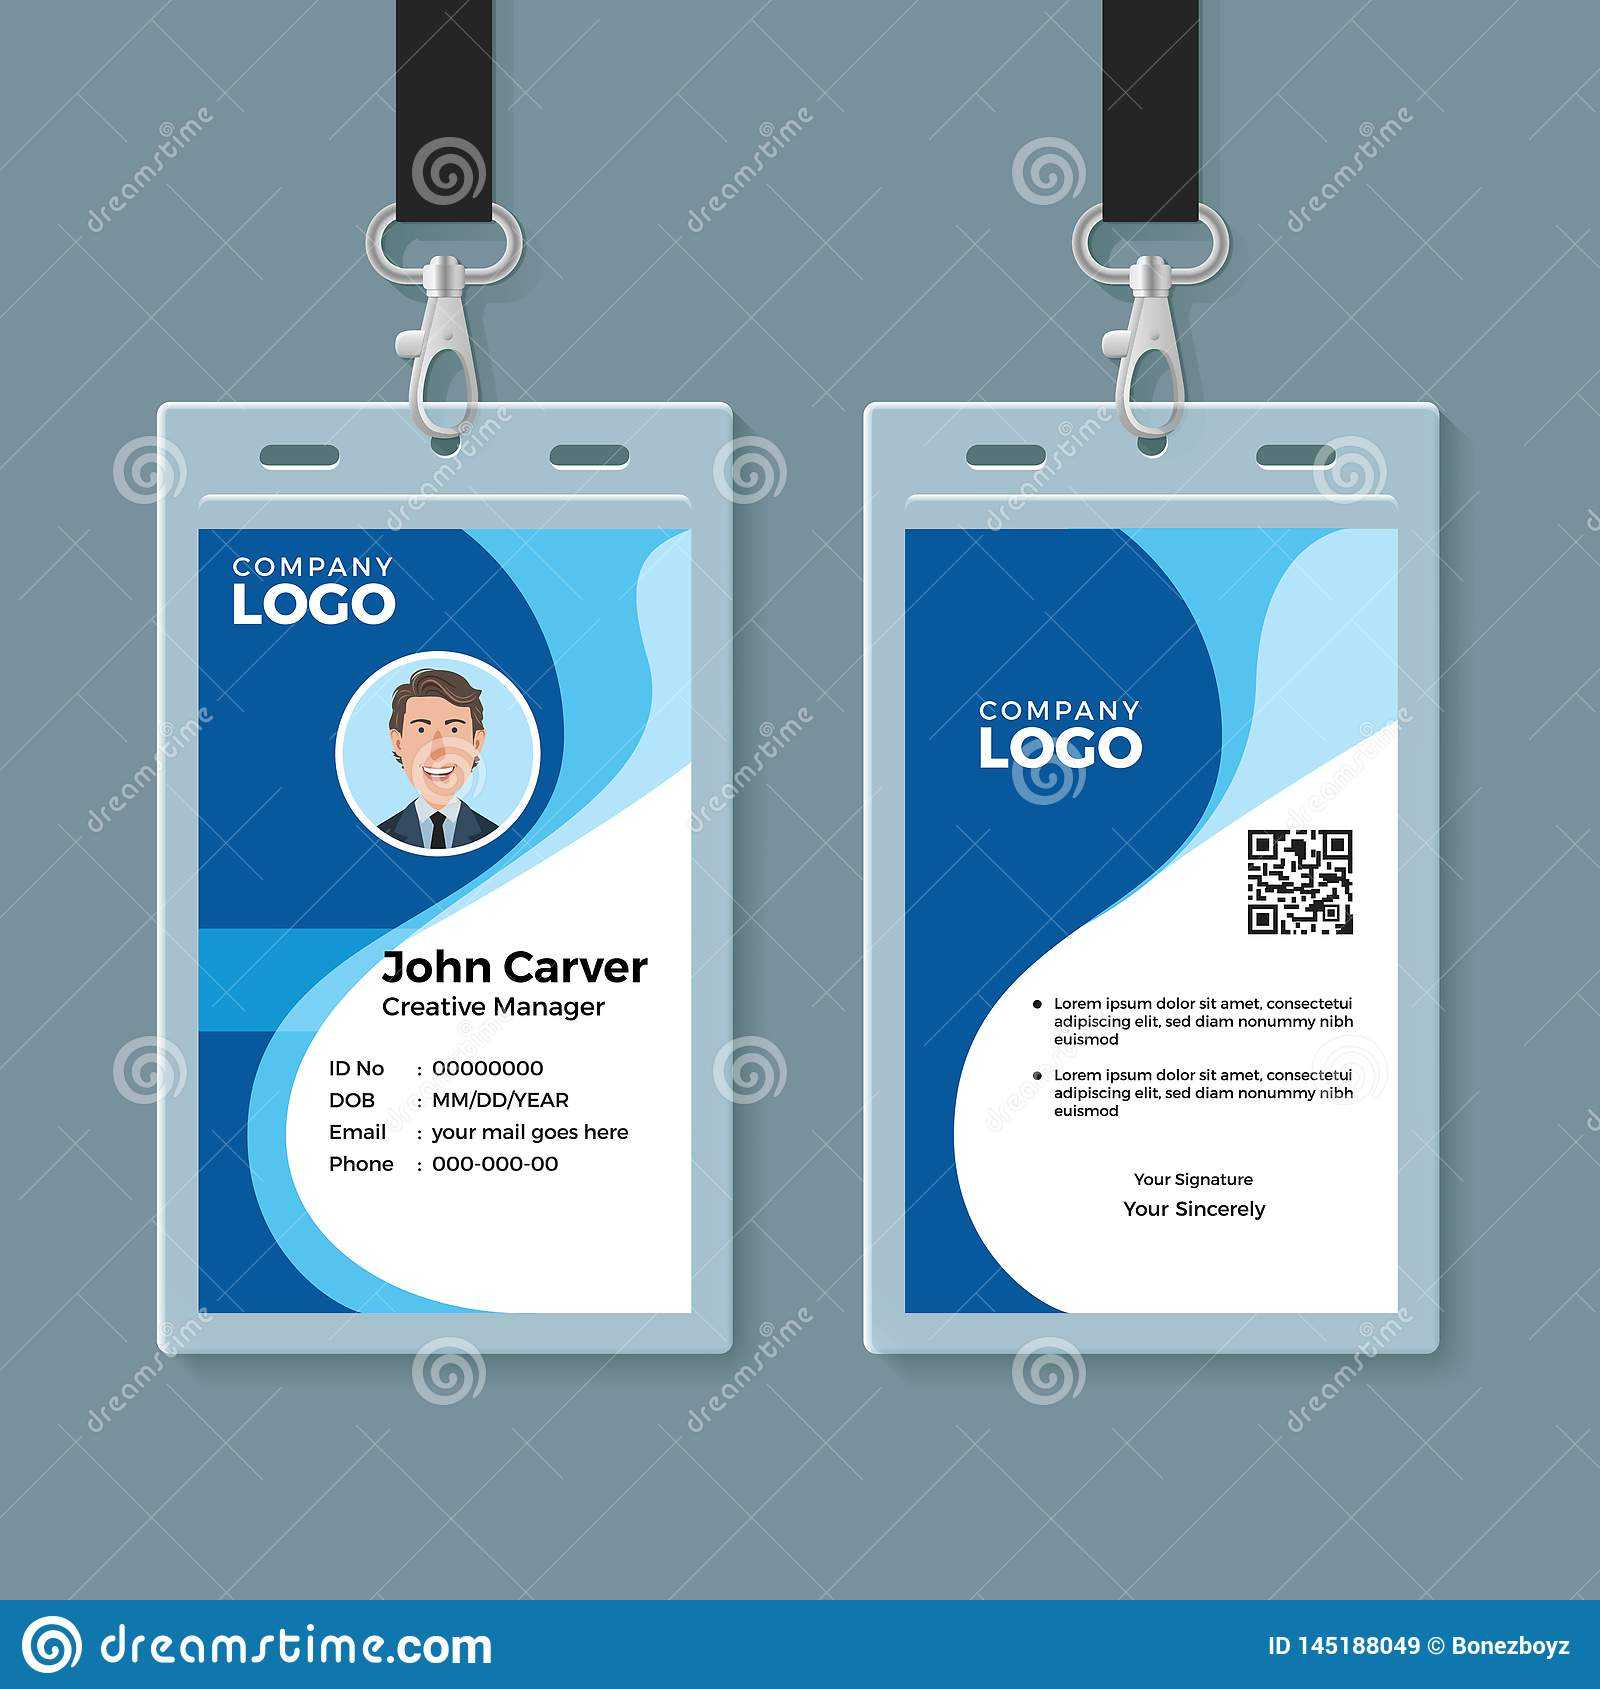 Blue Curve Wave Id Card Design Template Stock Vector Throughout Company Id Card Design Template